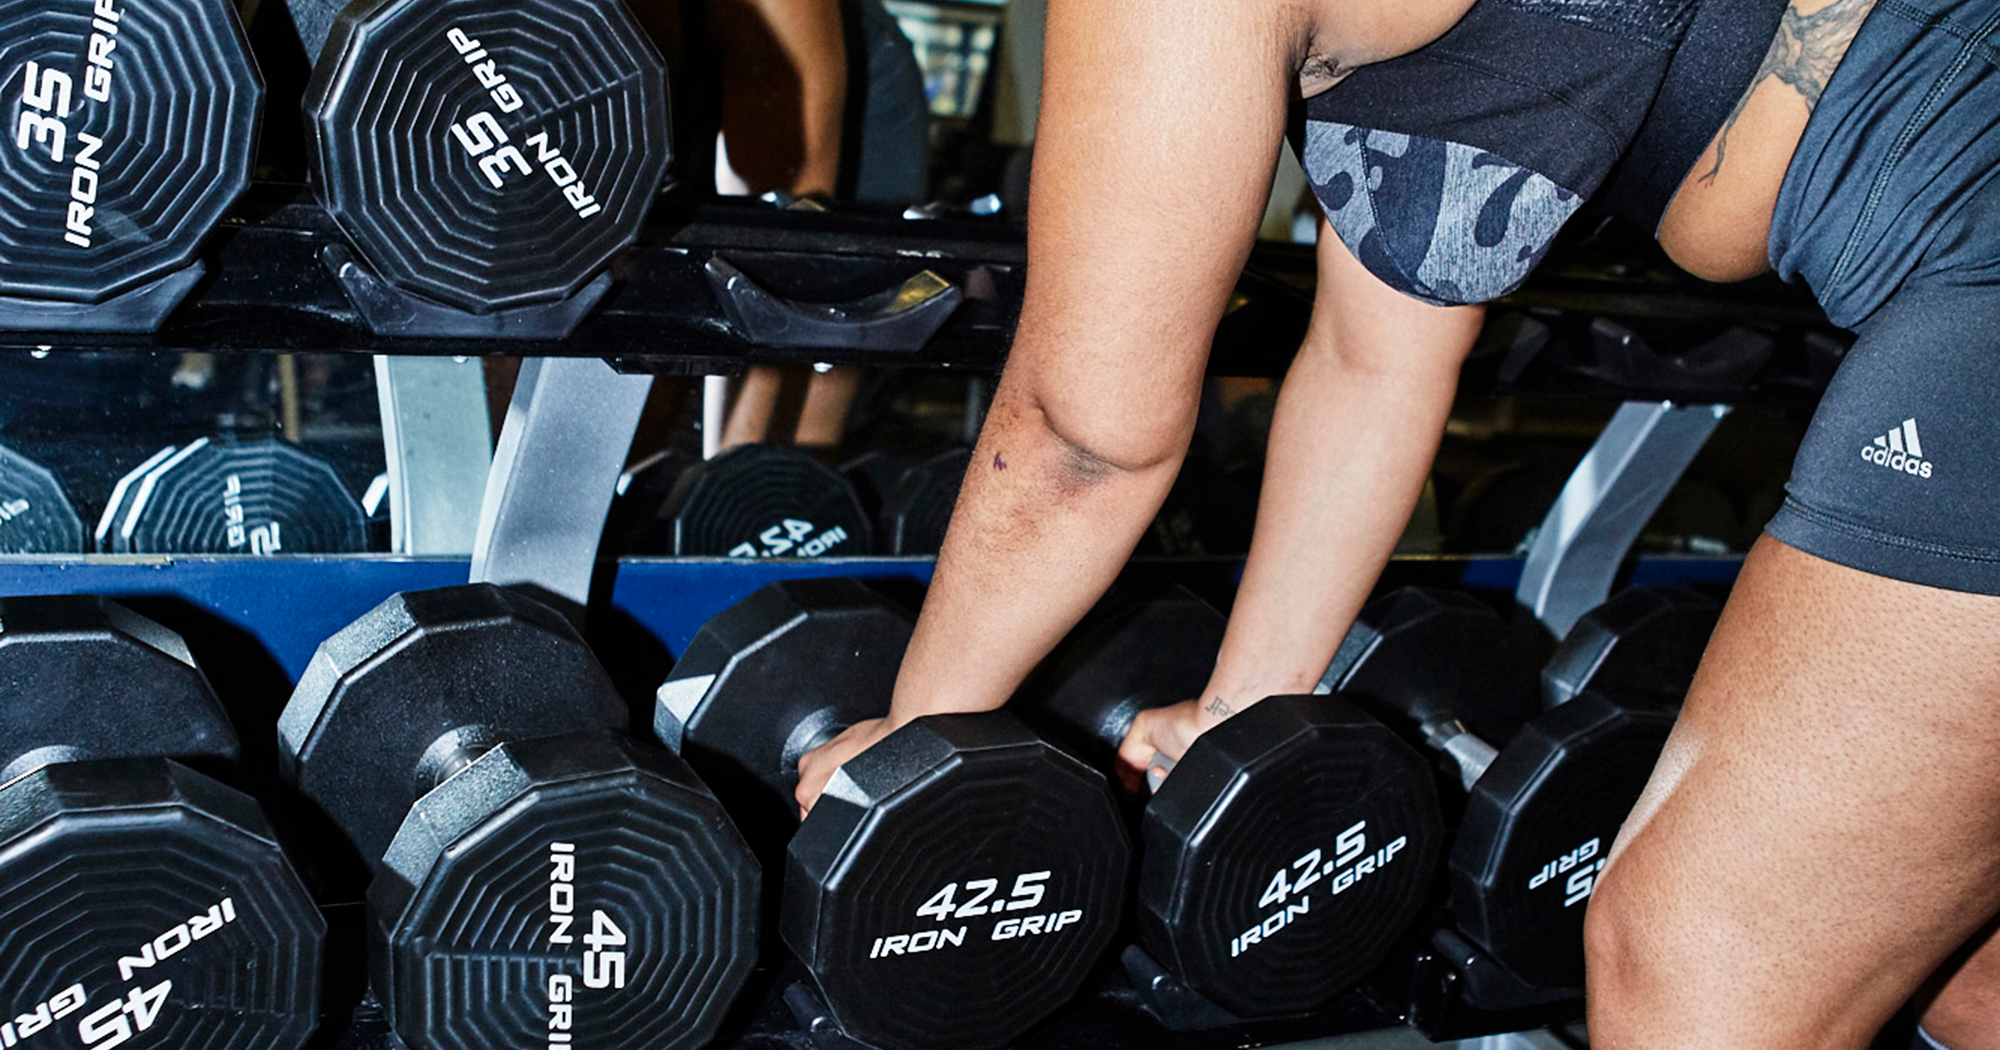 The Strength-Training Machines You Should Learn To Use In Your Gym